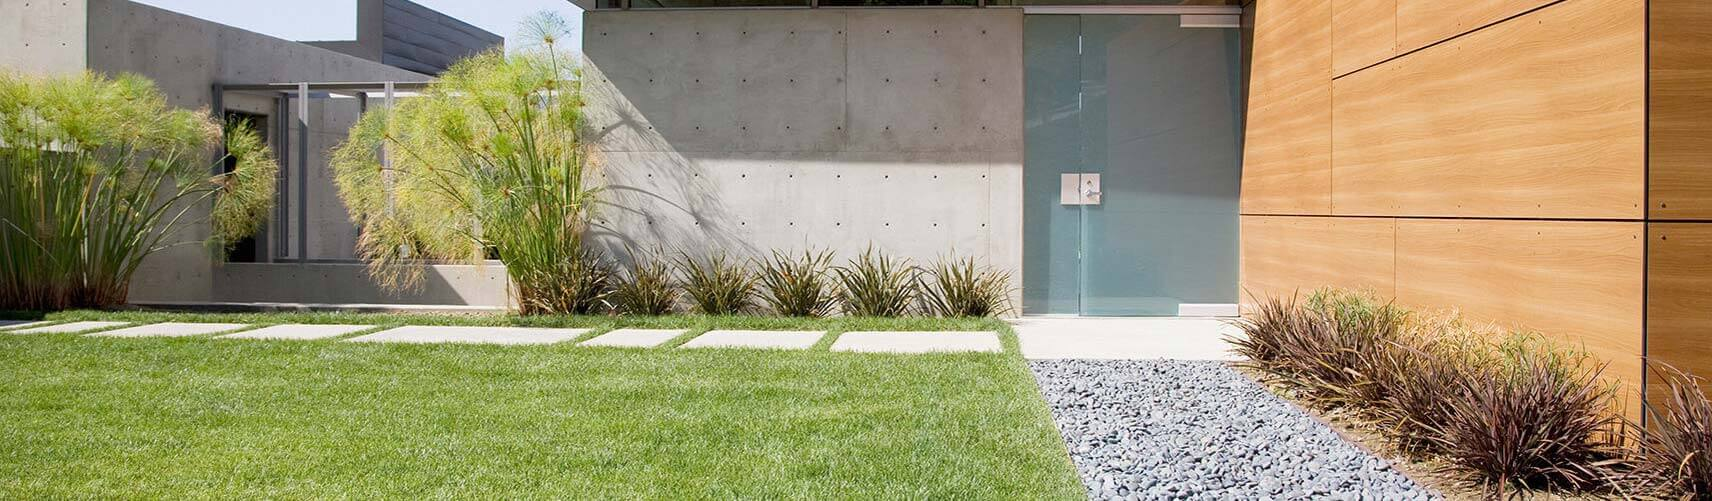 Perris Landscaping Company, Landscaping Services and Sprinkler System Installation